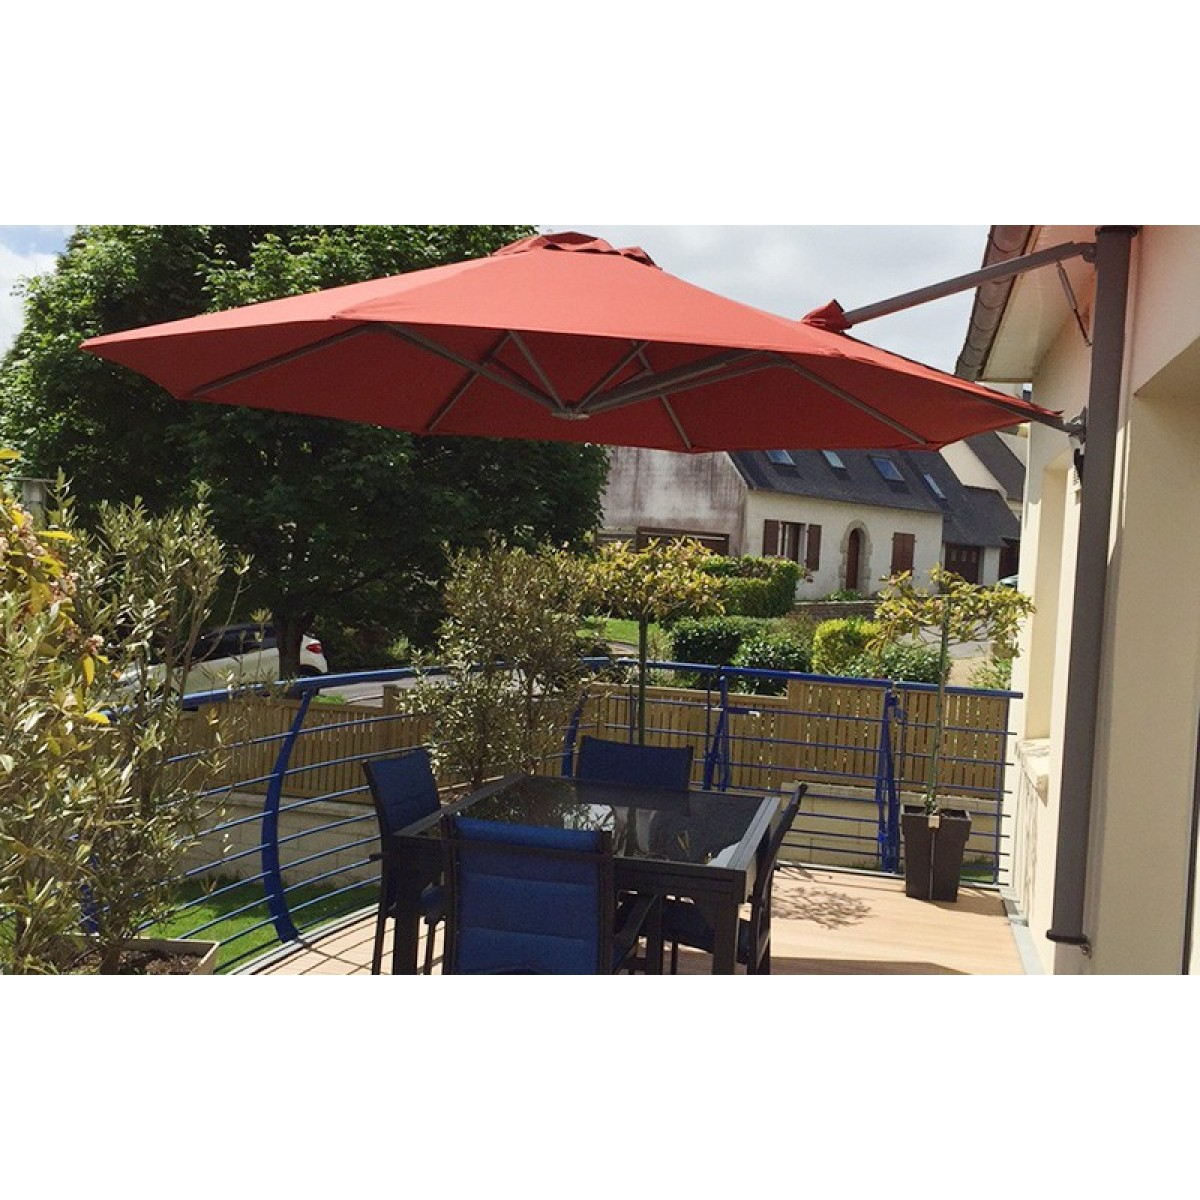 Parasol Aan Muur P7 Wall Parasol 250x250cm Now Available In The Official Solero Store